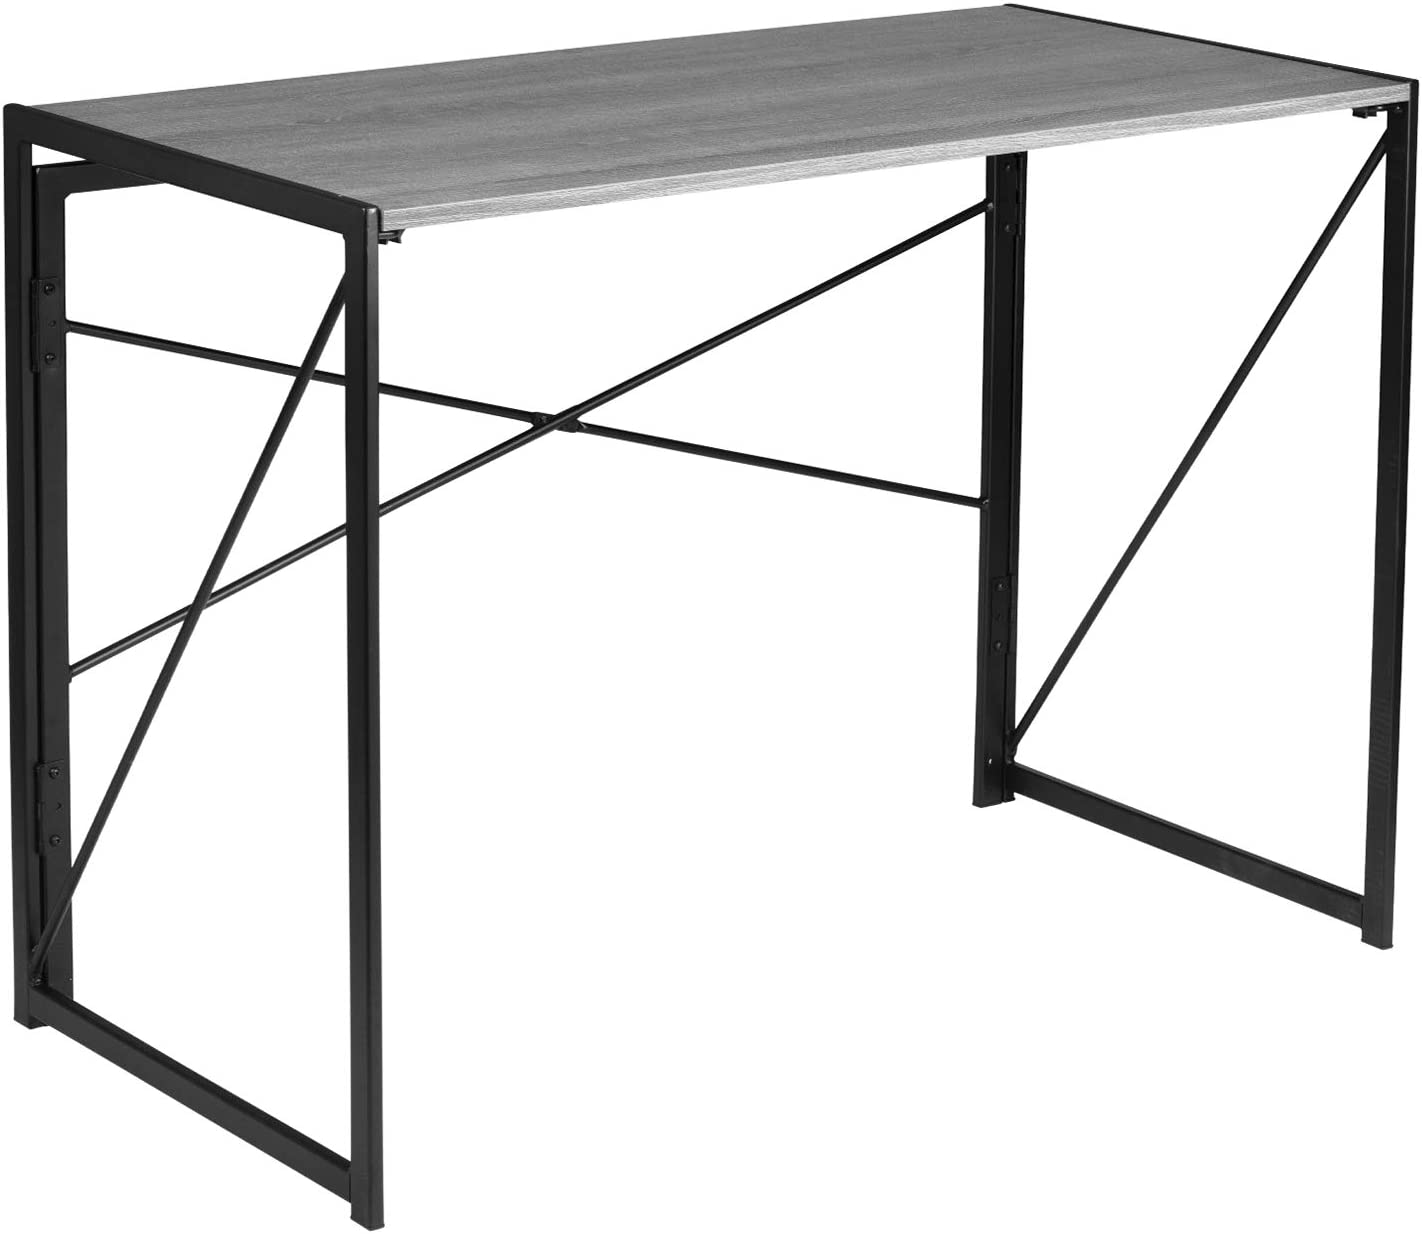 Folding Computer Laptop Desk Modern Writing Table Home Office